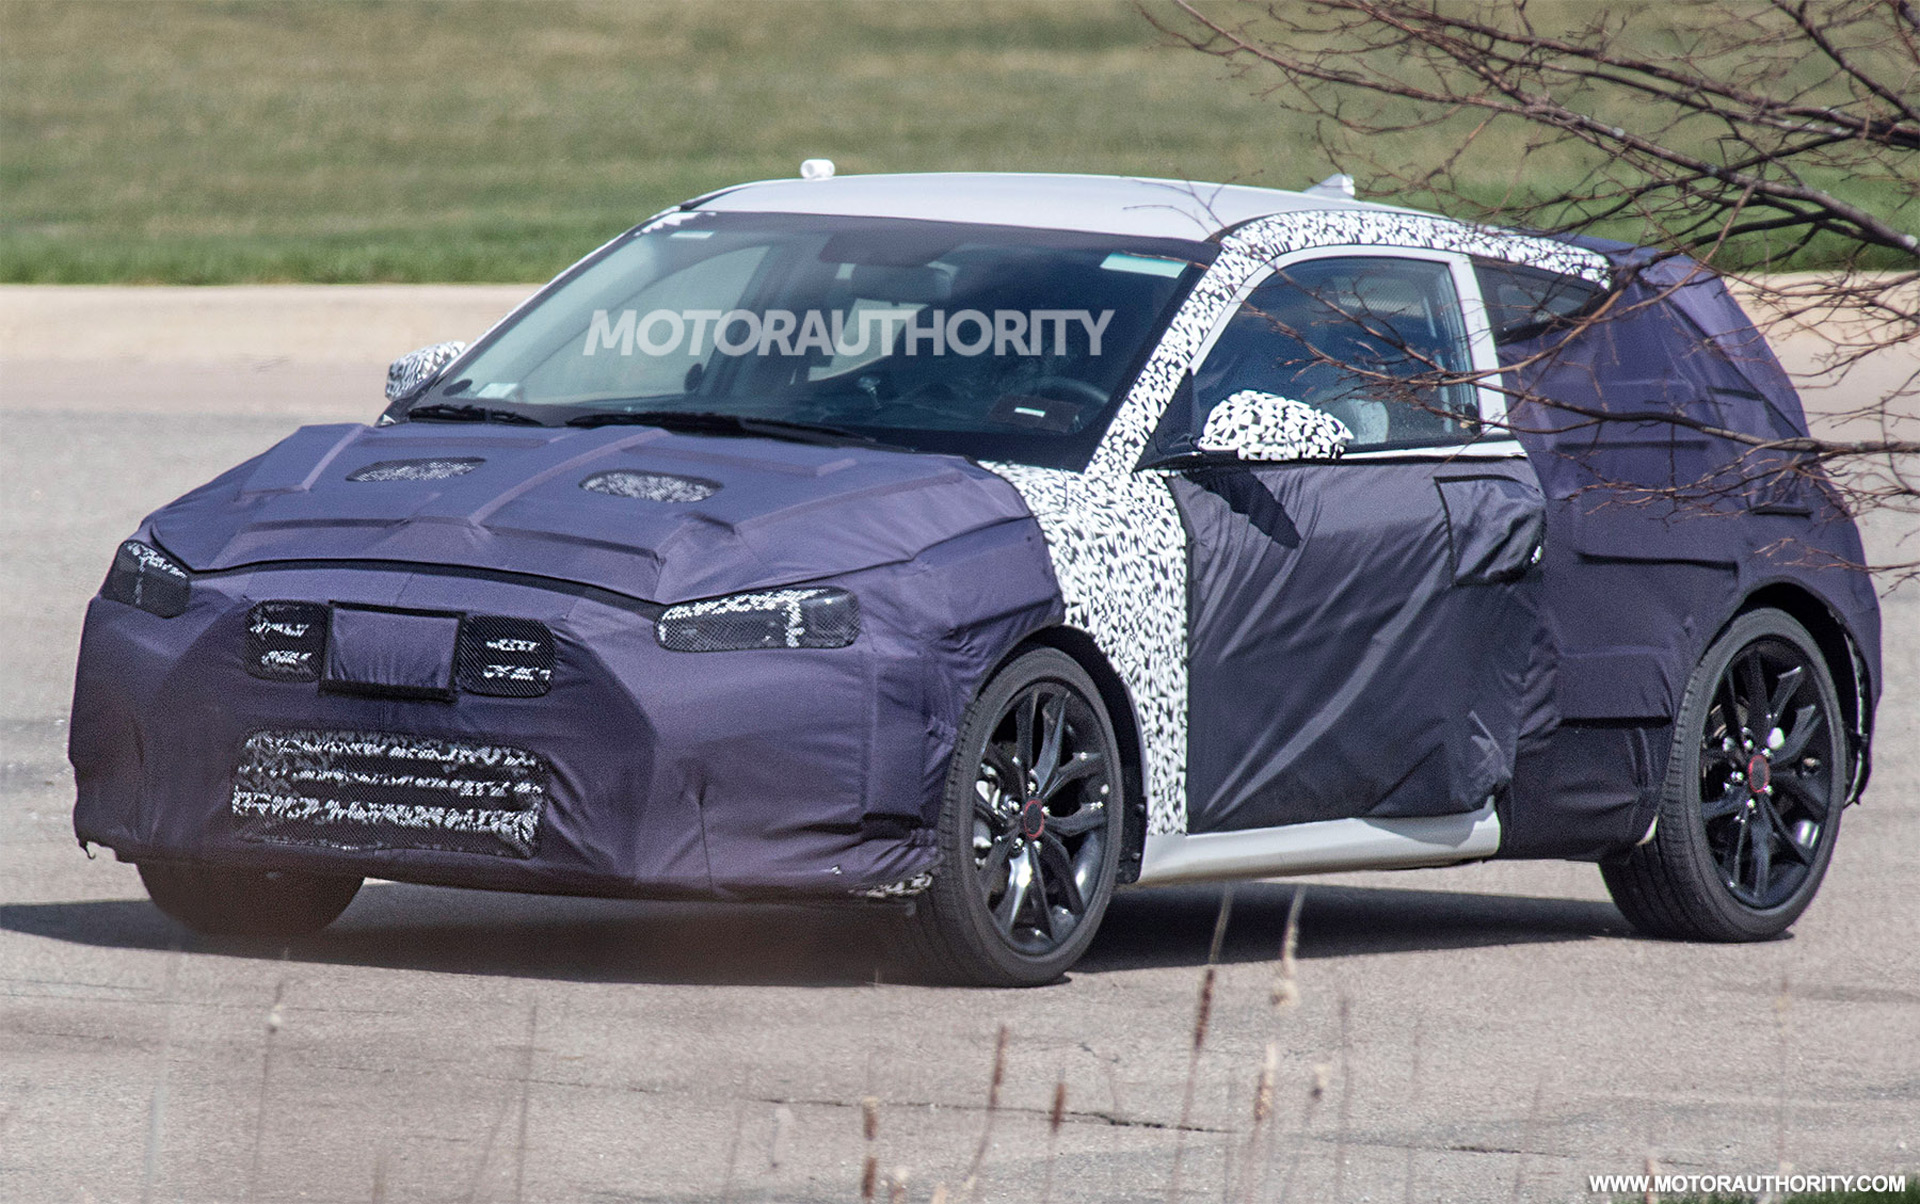 2018 Ford Expedition Review >> 2019 Hyundai Veloster spy shots